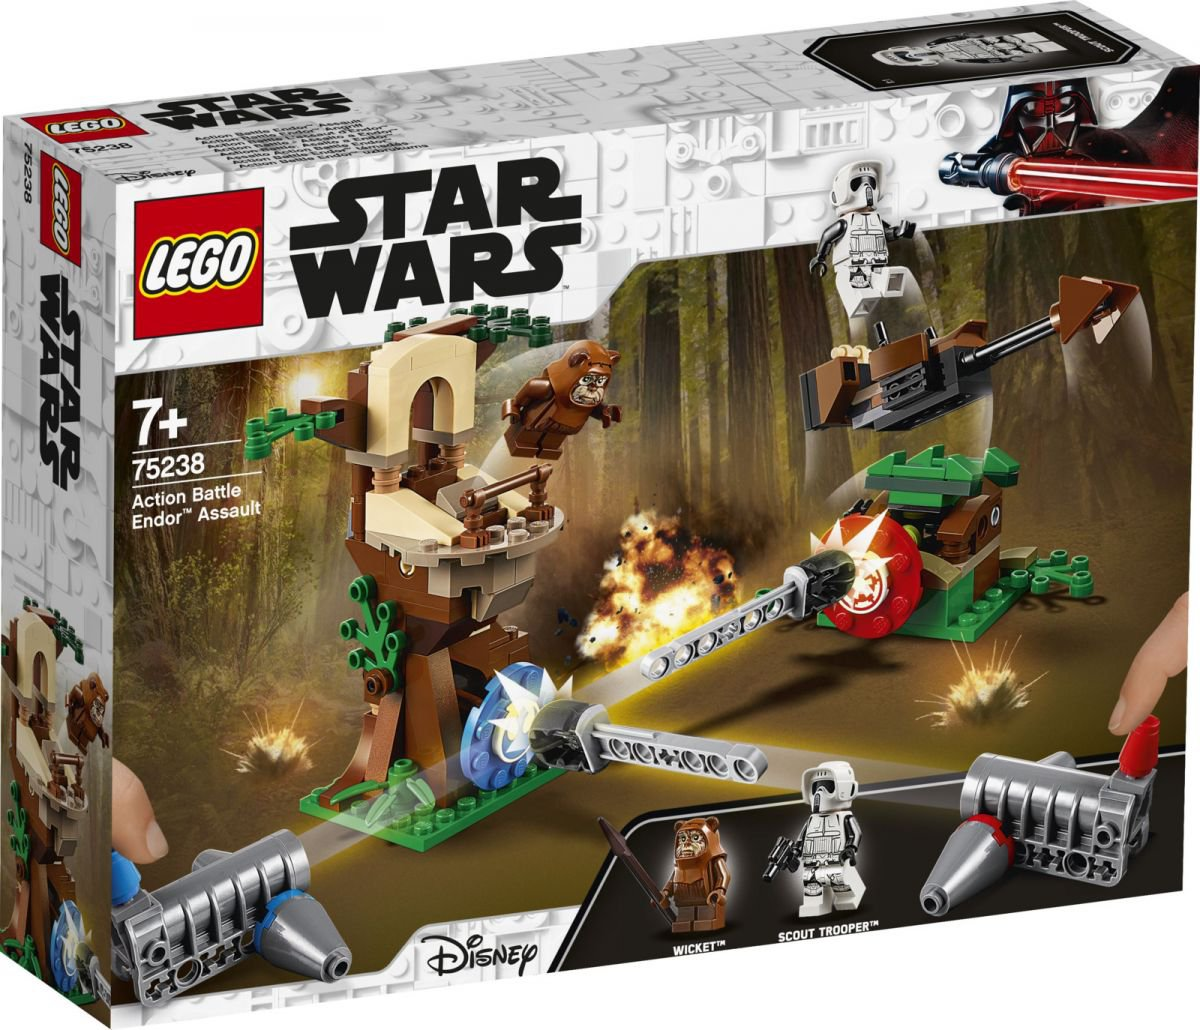 LEGO Star Wars 75238 Attack on the planet Endor Play Set Gift Building Toy